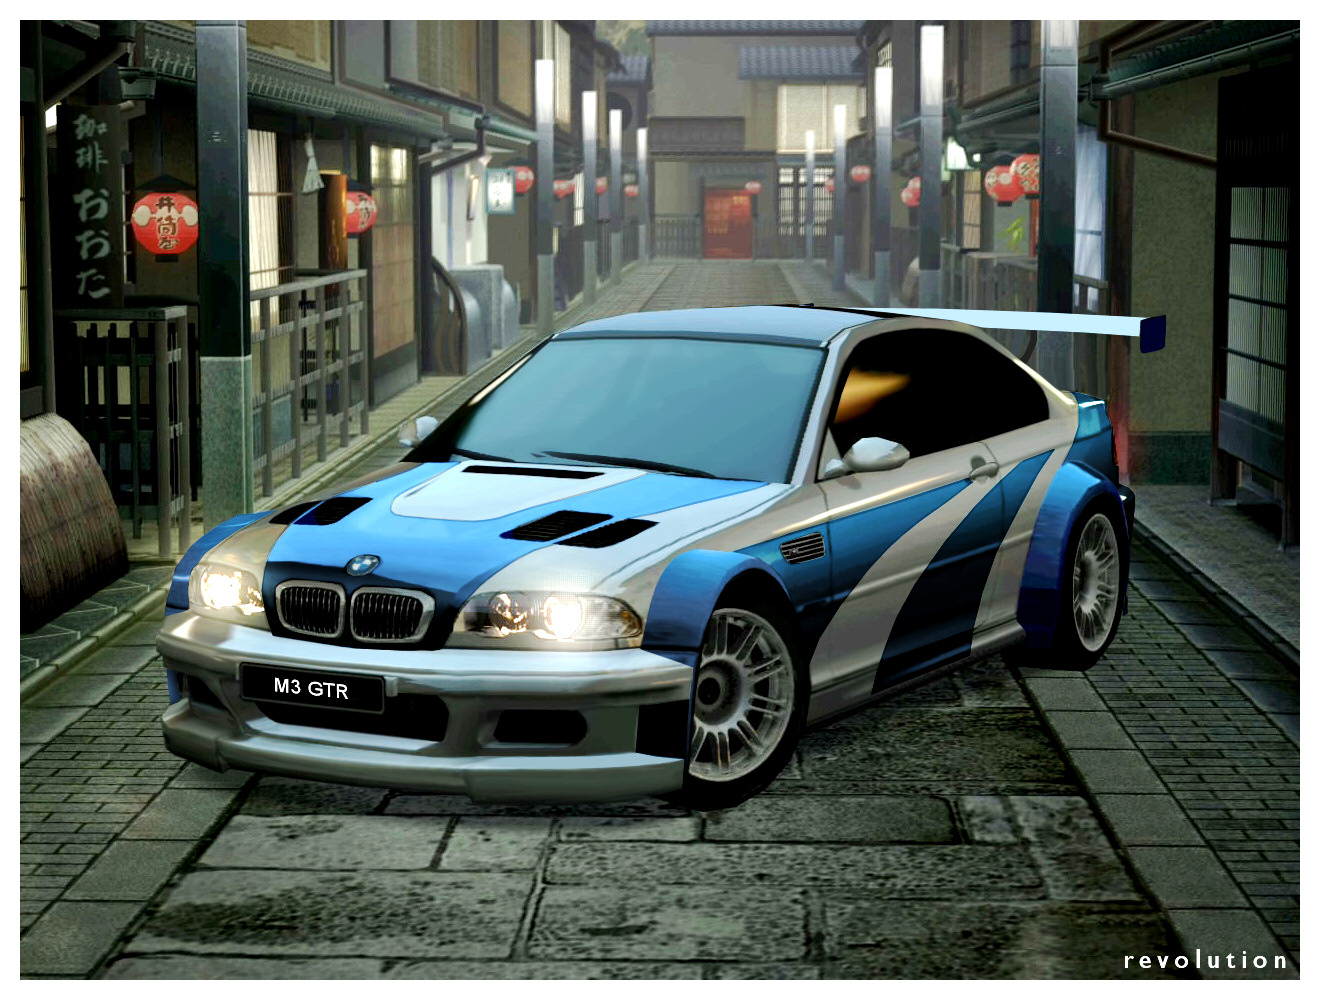 BMW M3 GTR Wallpapers For Ipad